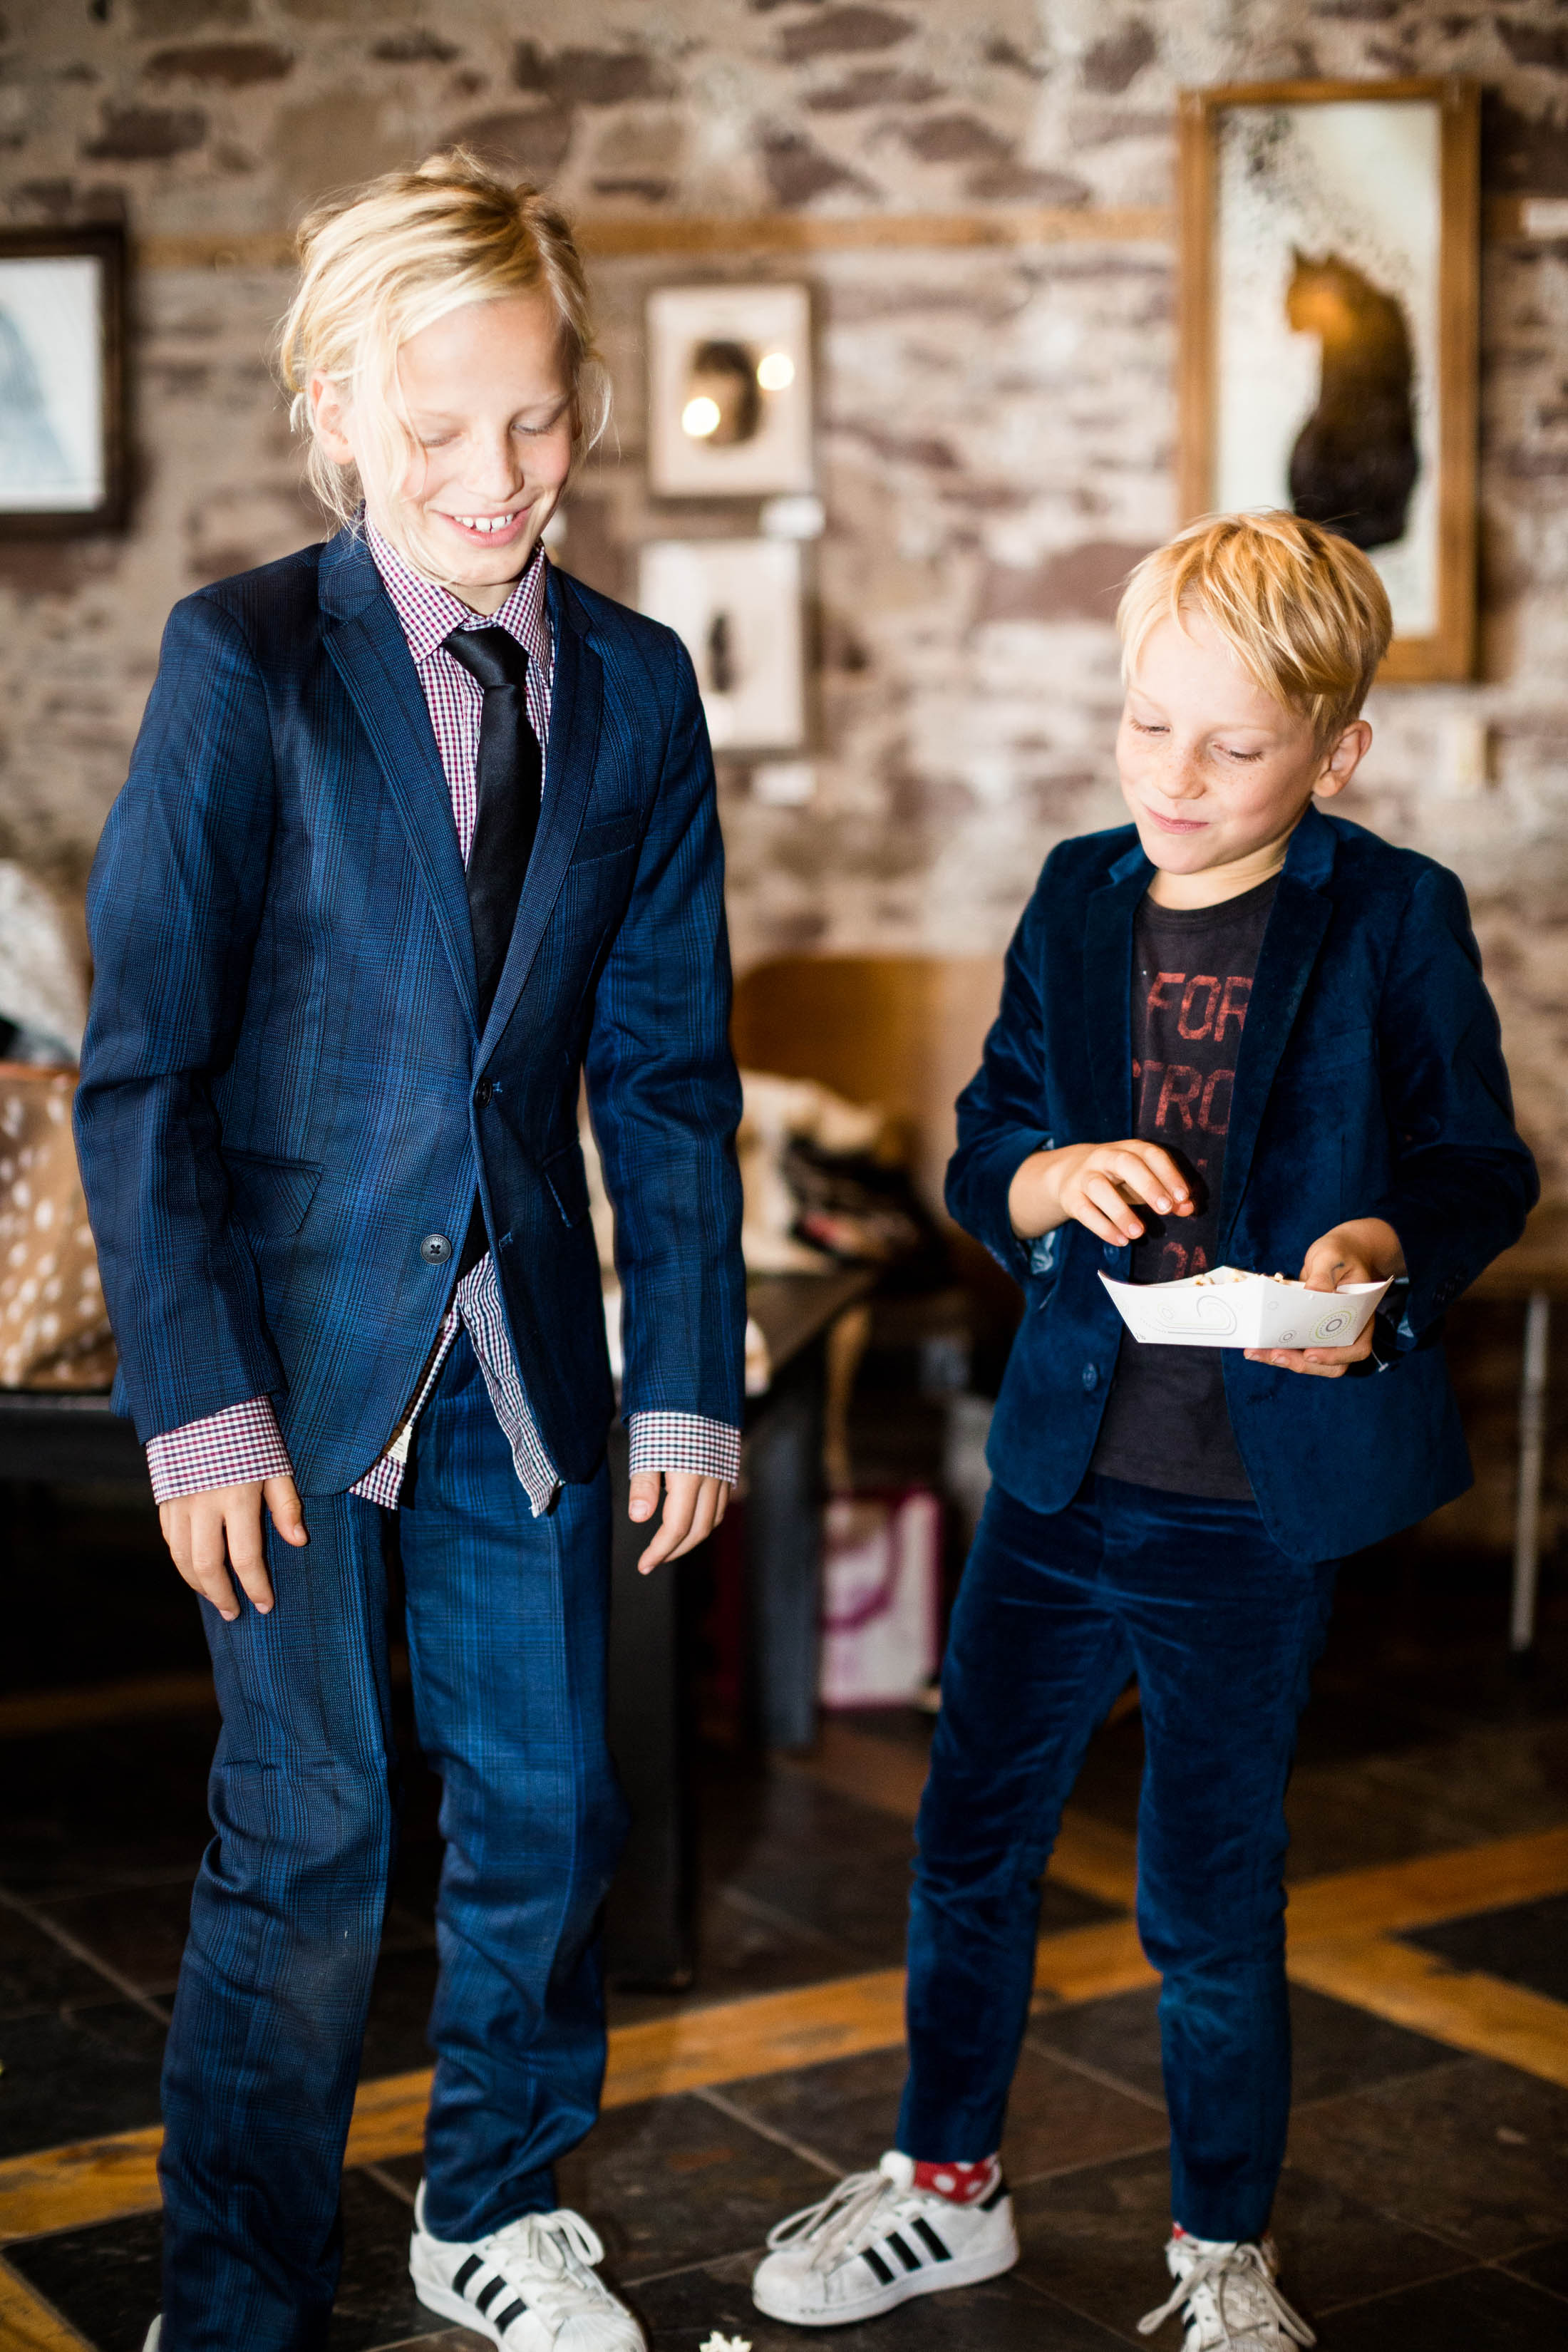 Sometimes, a suit is required...even for kids, epecially boys. For that, we choose Appaman — clothes that are well-made, last forever, and have personality.